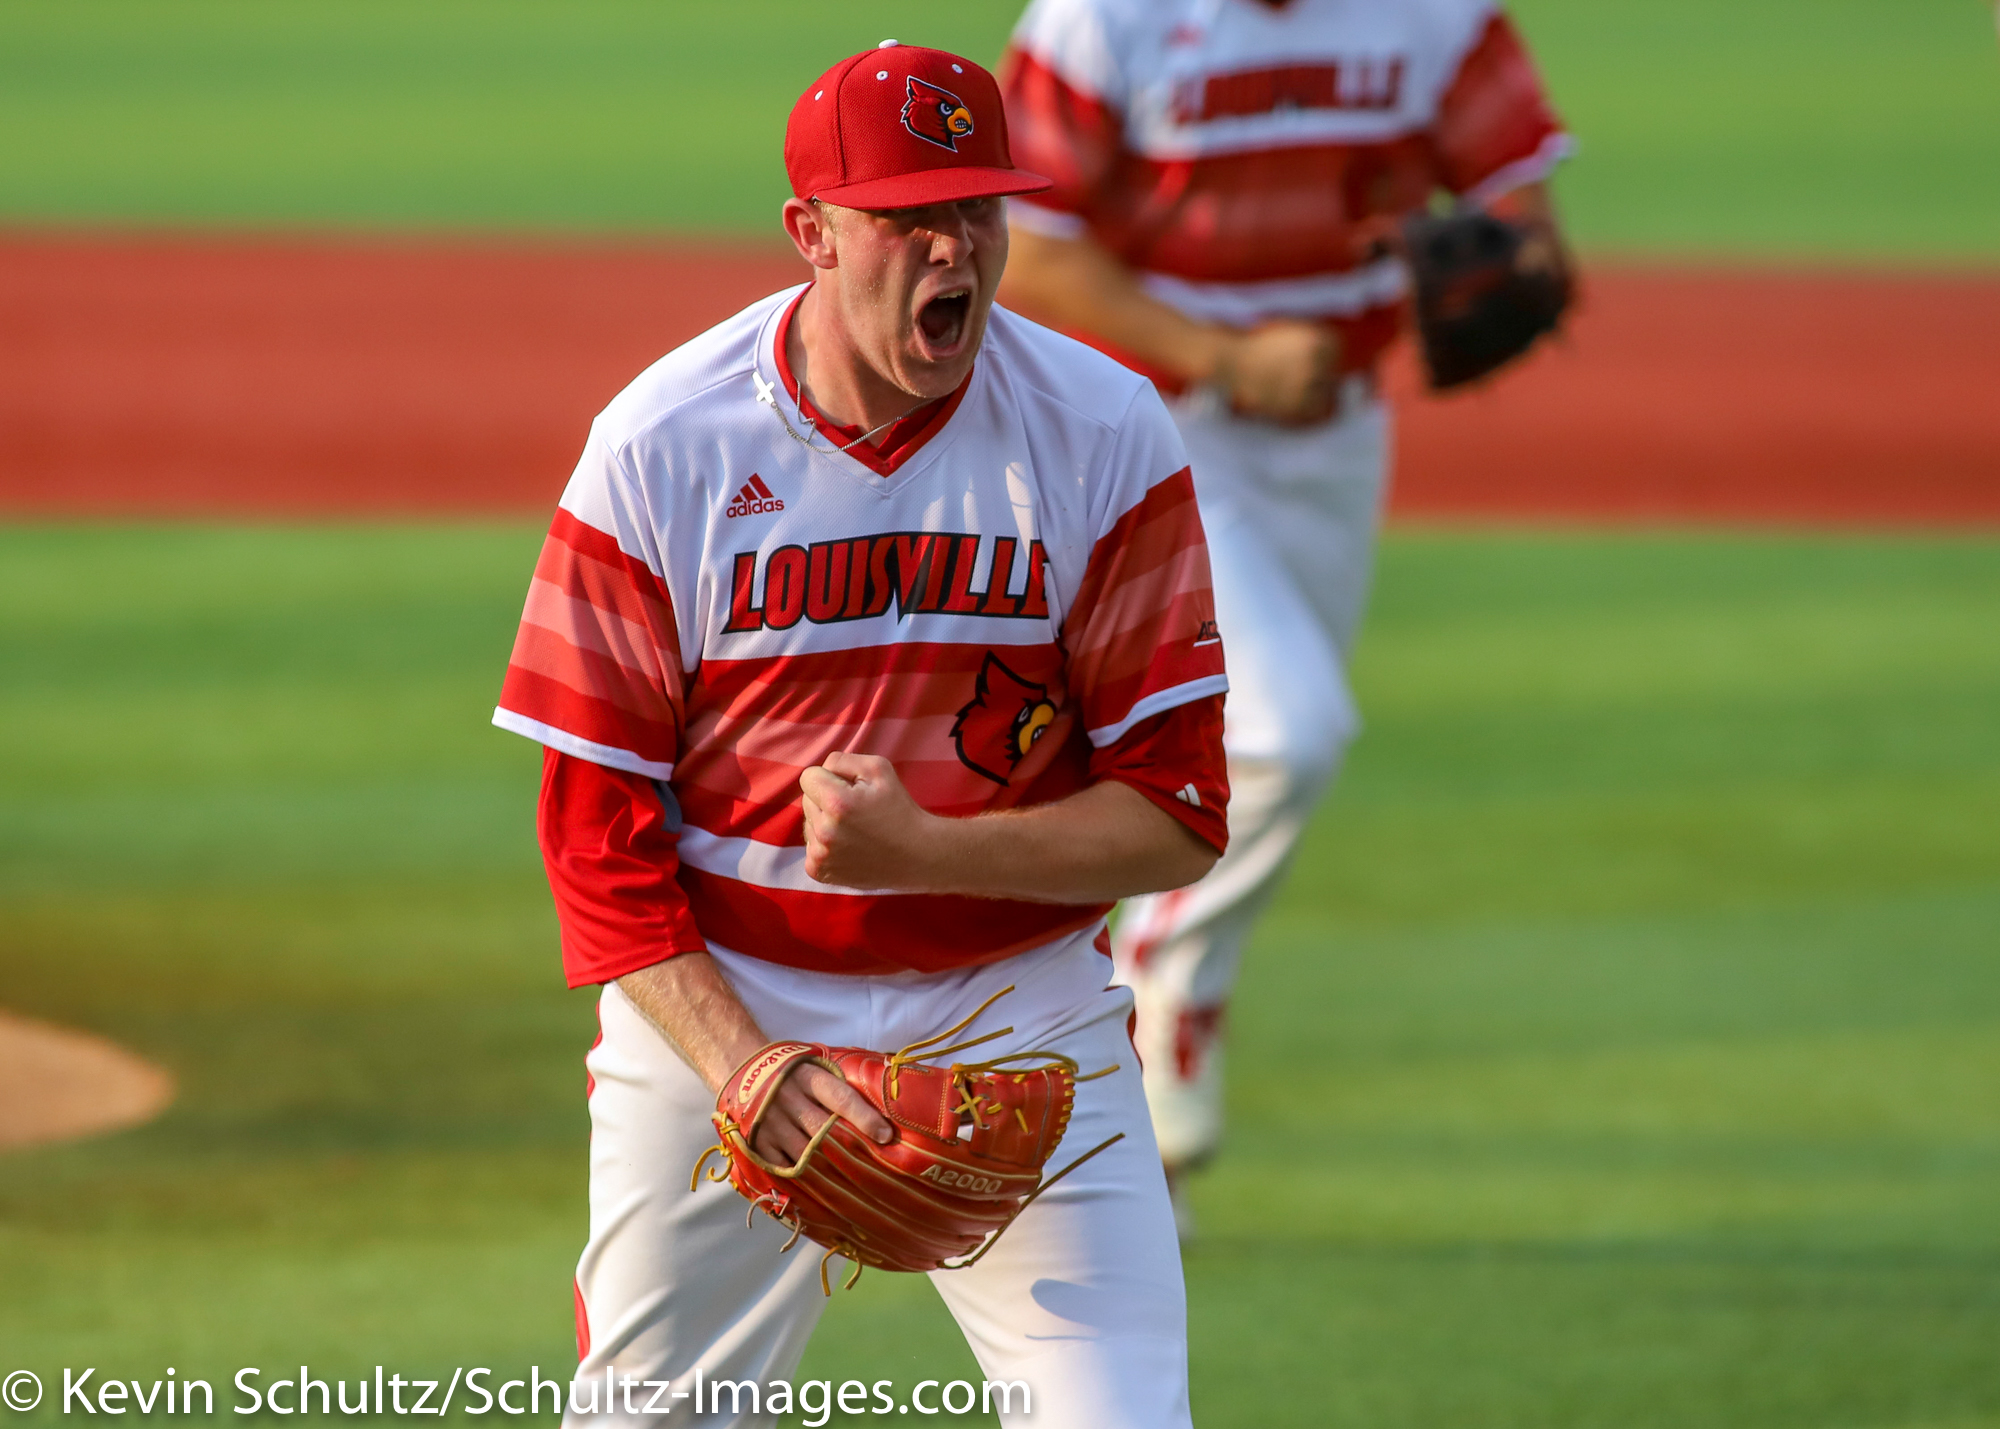 Cbd Photo Gallery Louisville 5 Uic 3 College Baseball Daily